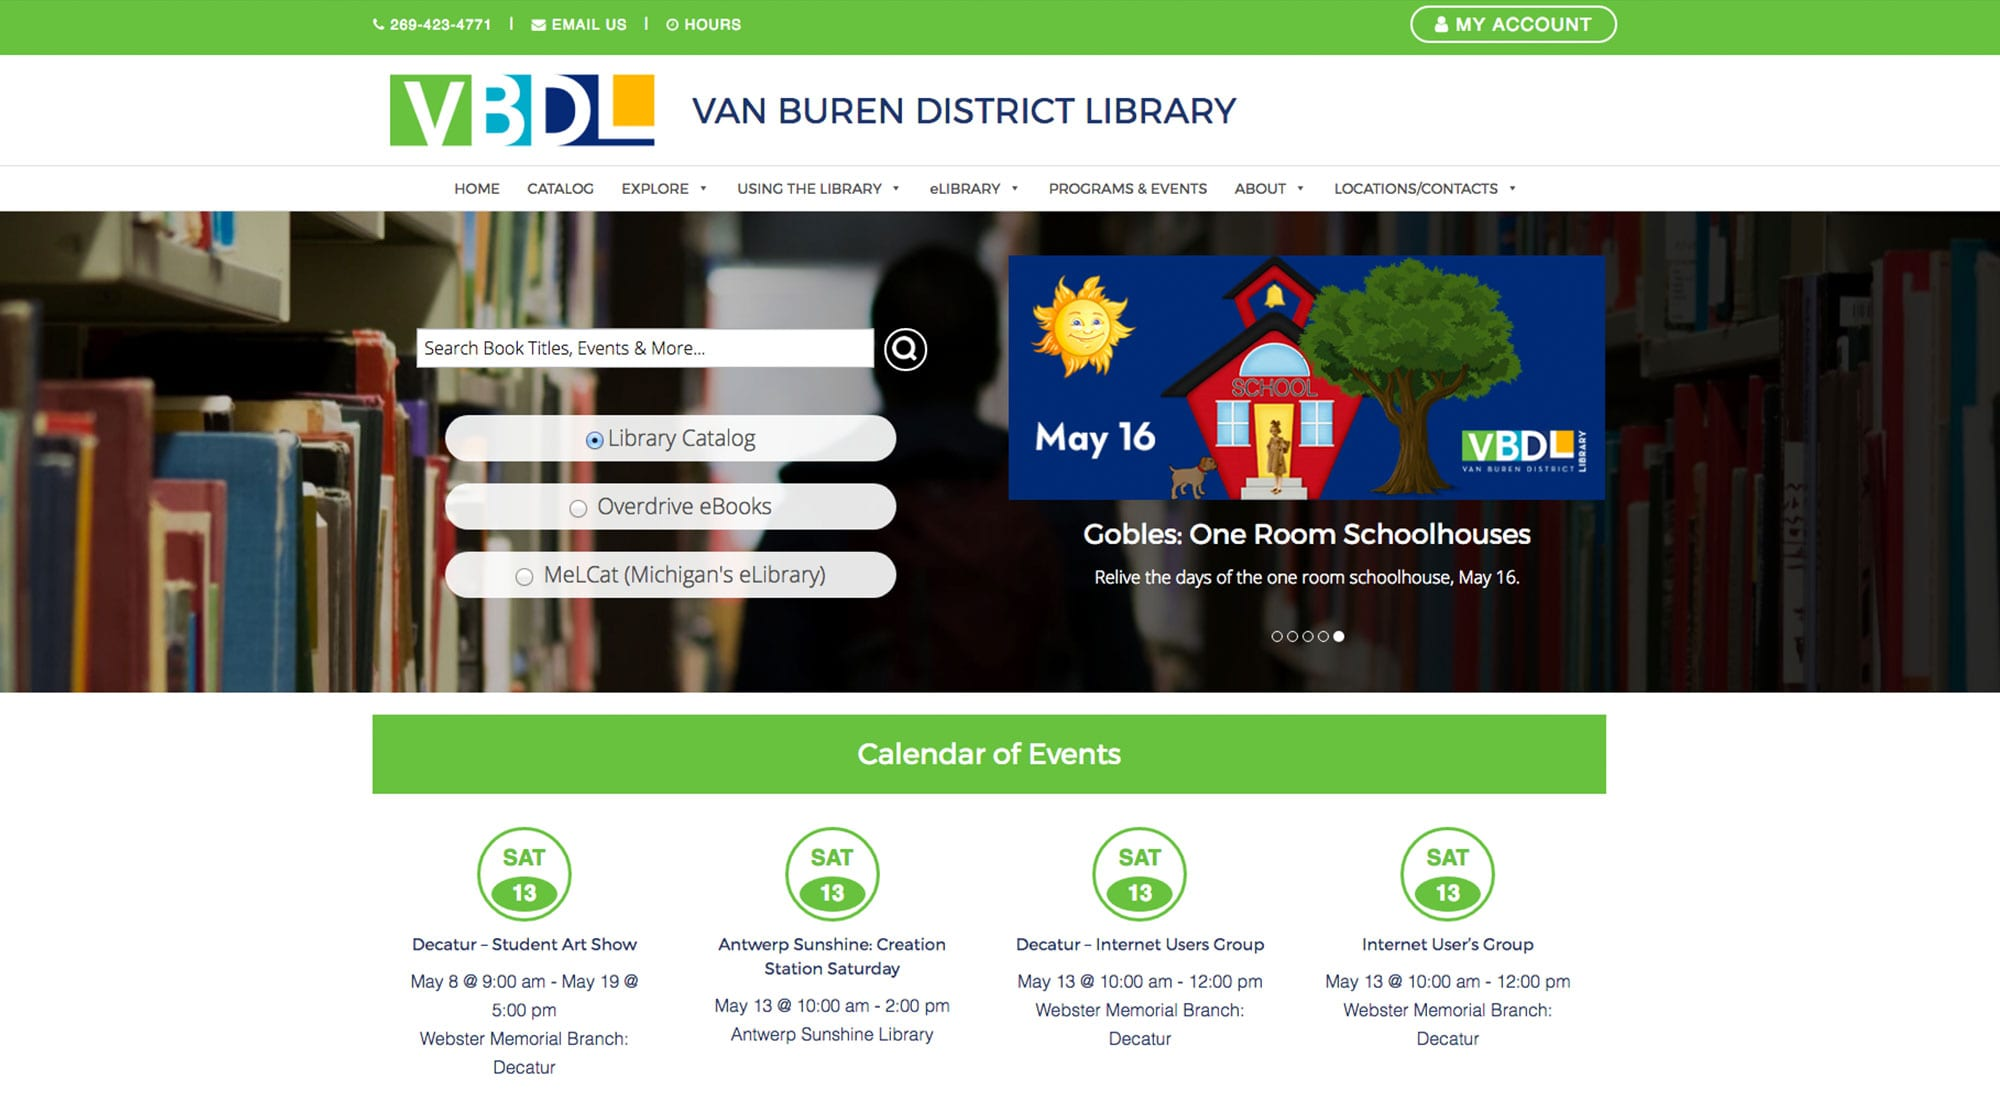 Van Buren District Library Website Design by Pixelvine Creative